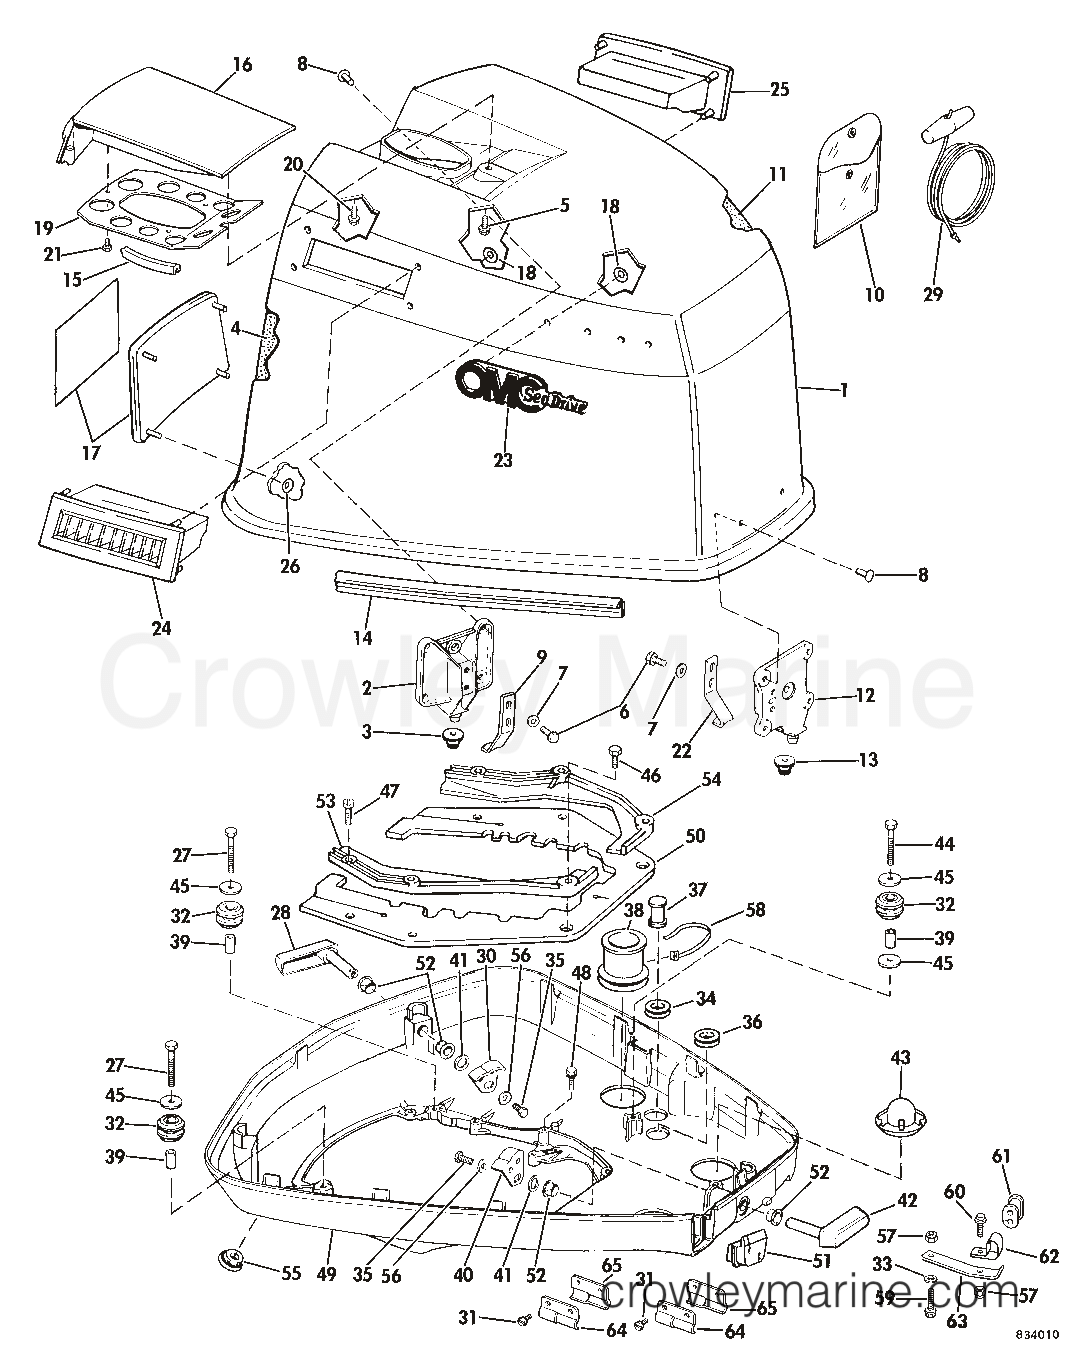 Sea Drive Omc V4 Engine Diagram Electrical Wiring Cover 1983 1 6l 2balctr Crowley Marine Cat